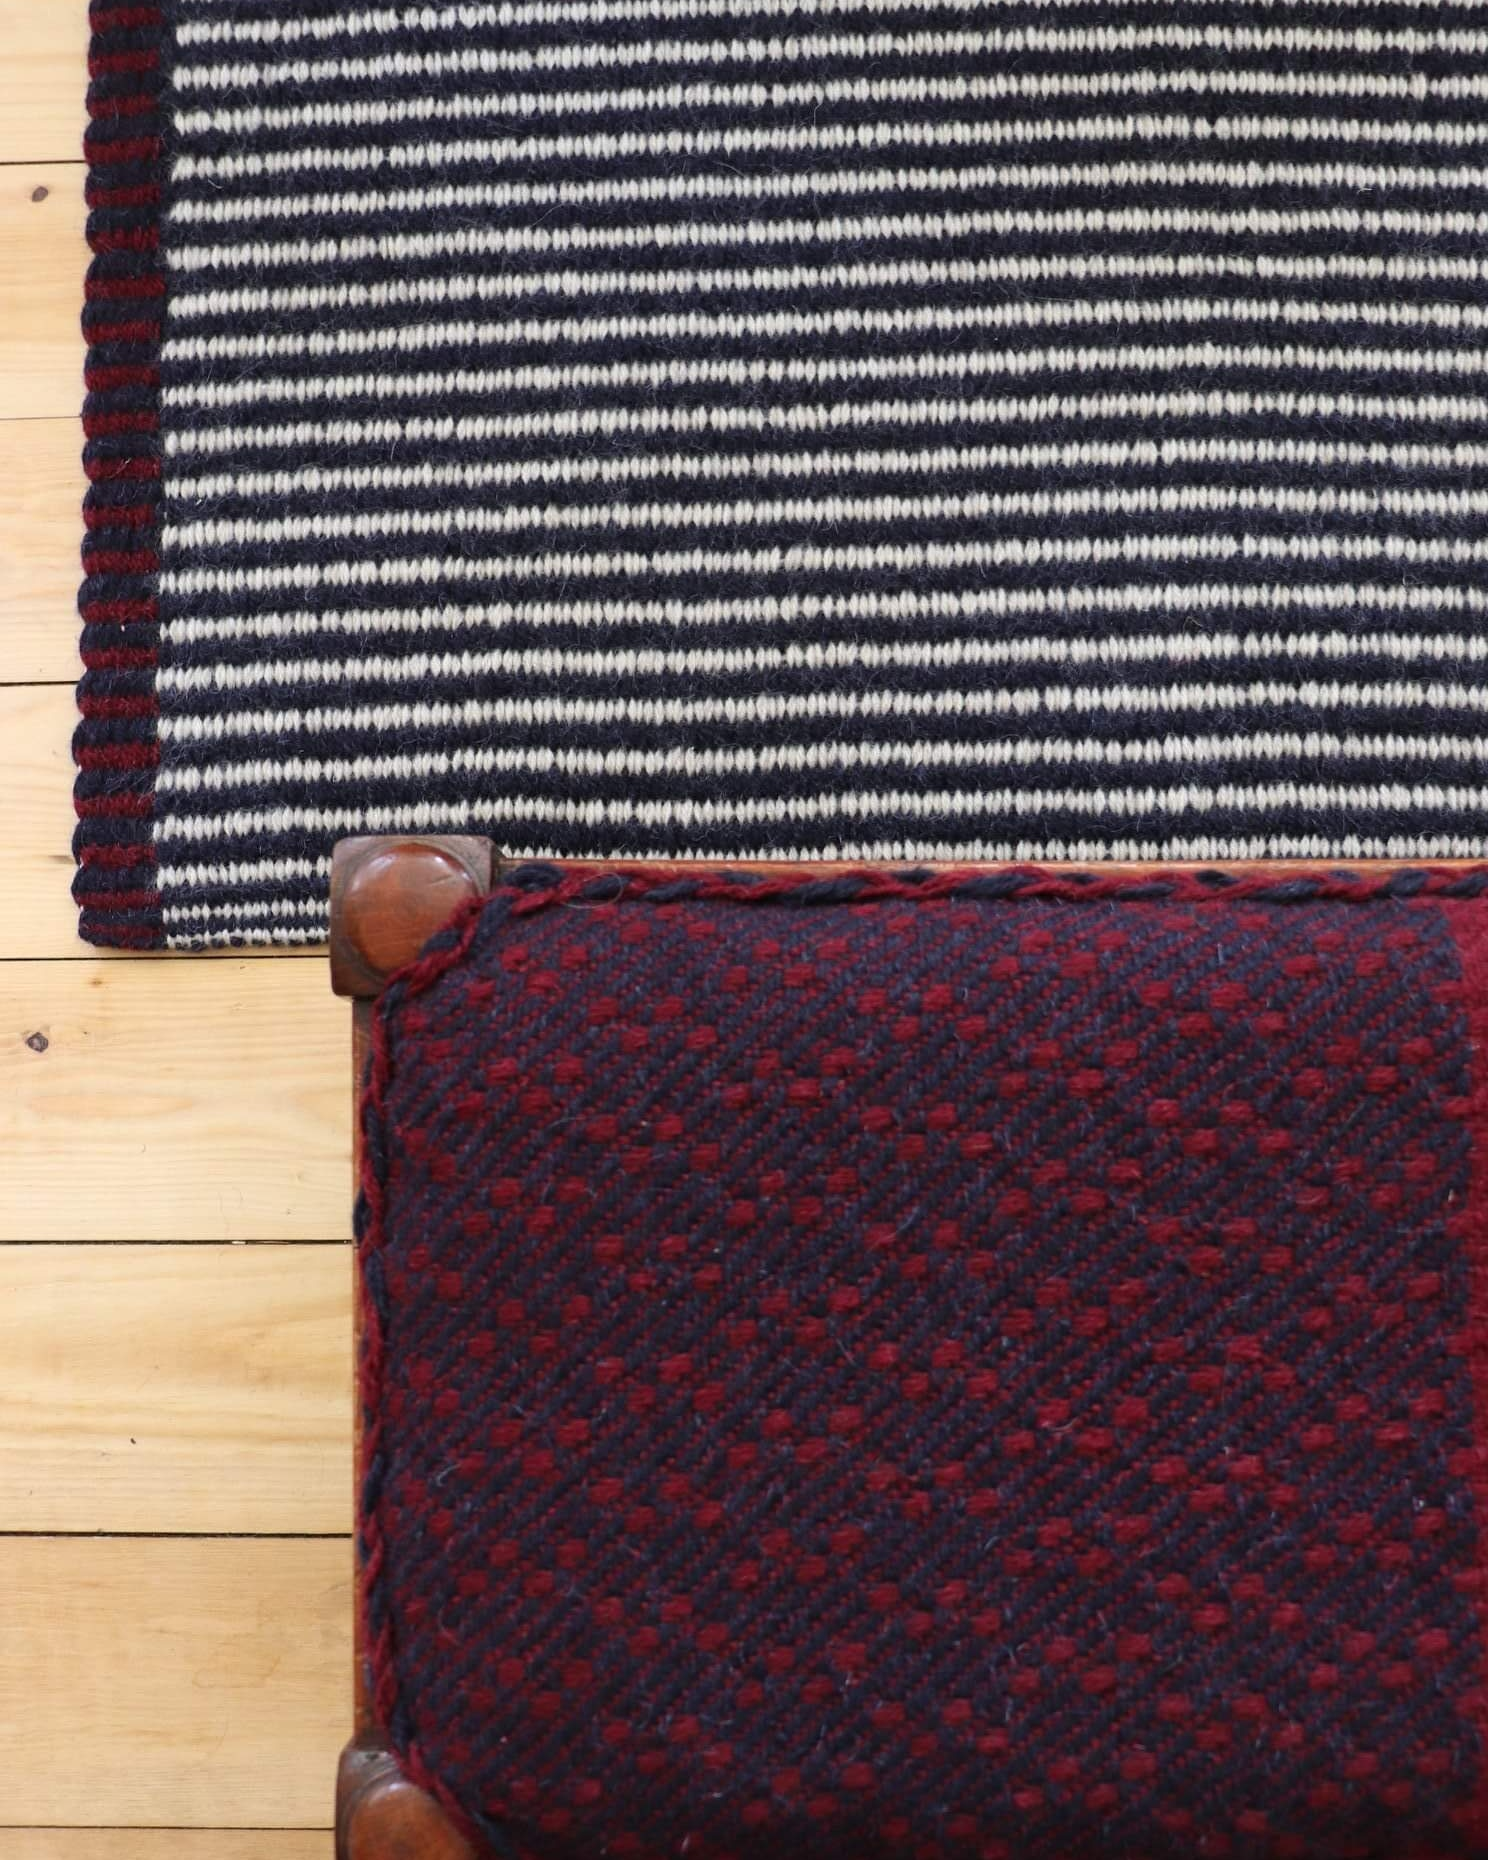 Handwoven rug and upholstered stool